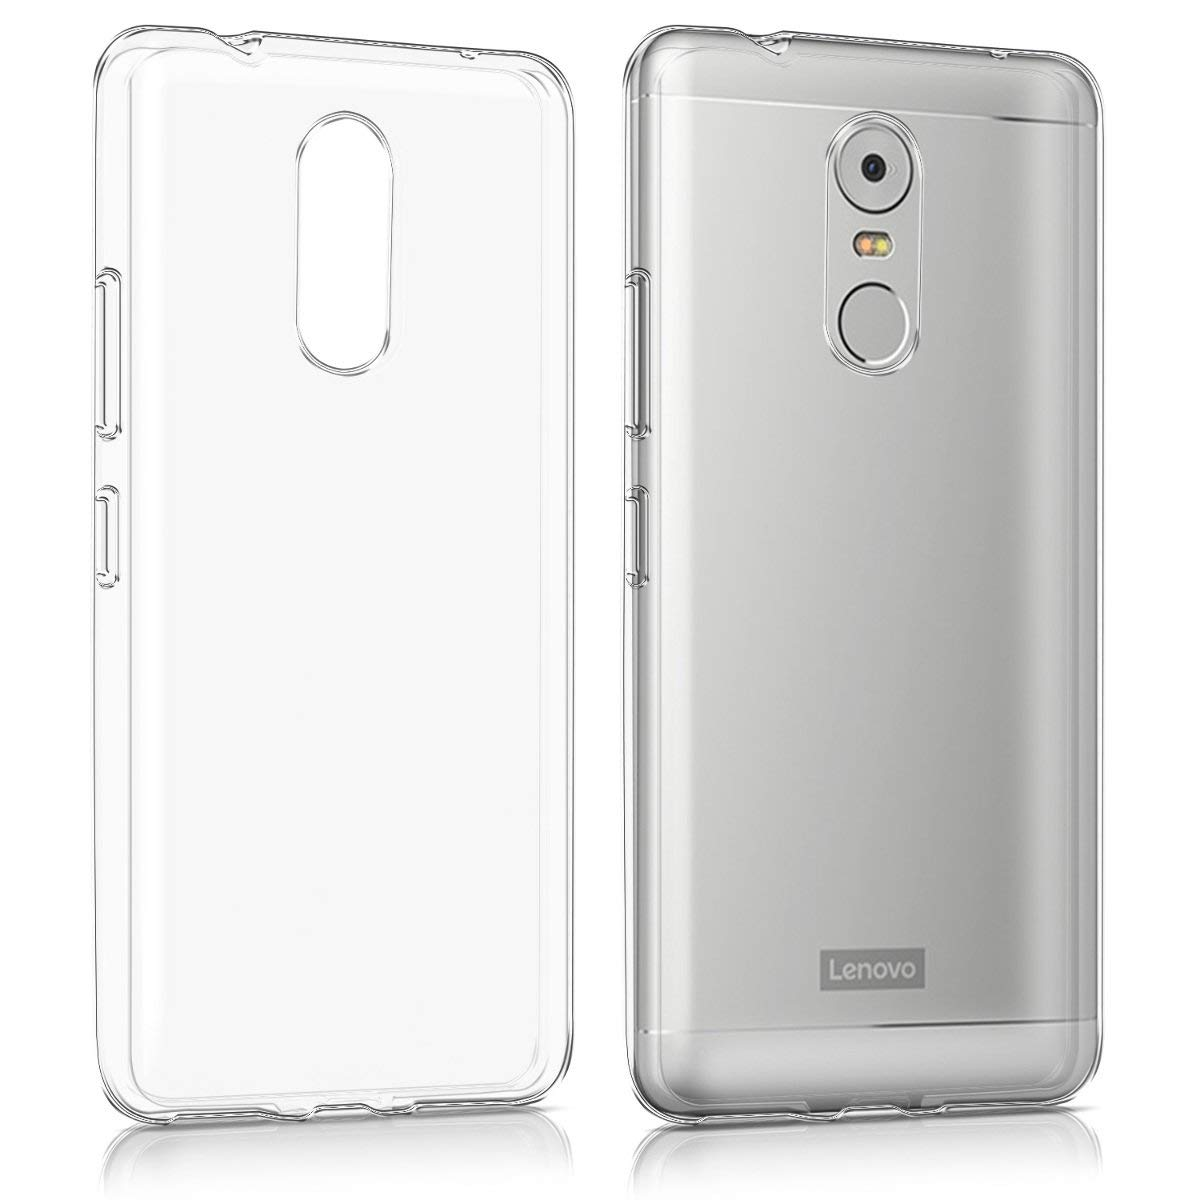 Transparent Silicone <font><b>Case</b></font> For <font><b>Lenovo</b></font> Vibe A7000 A6020 K5 K6 K8 Note P2 <font><b>Cover</b></font> For <font><b>Lenovo</b></font> <font><b>P70</b></font> TPU Clear Soft Protective Coque image